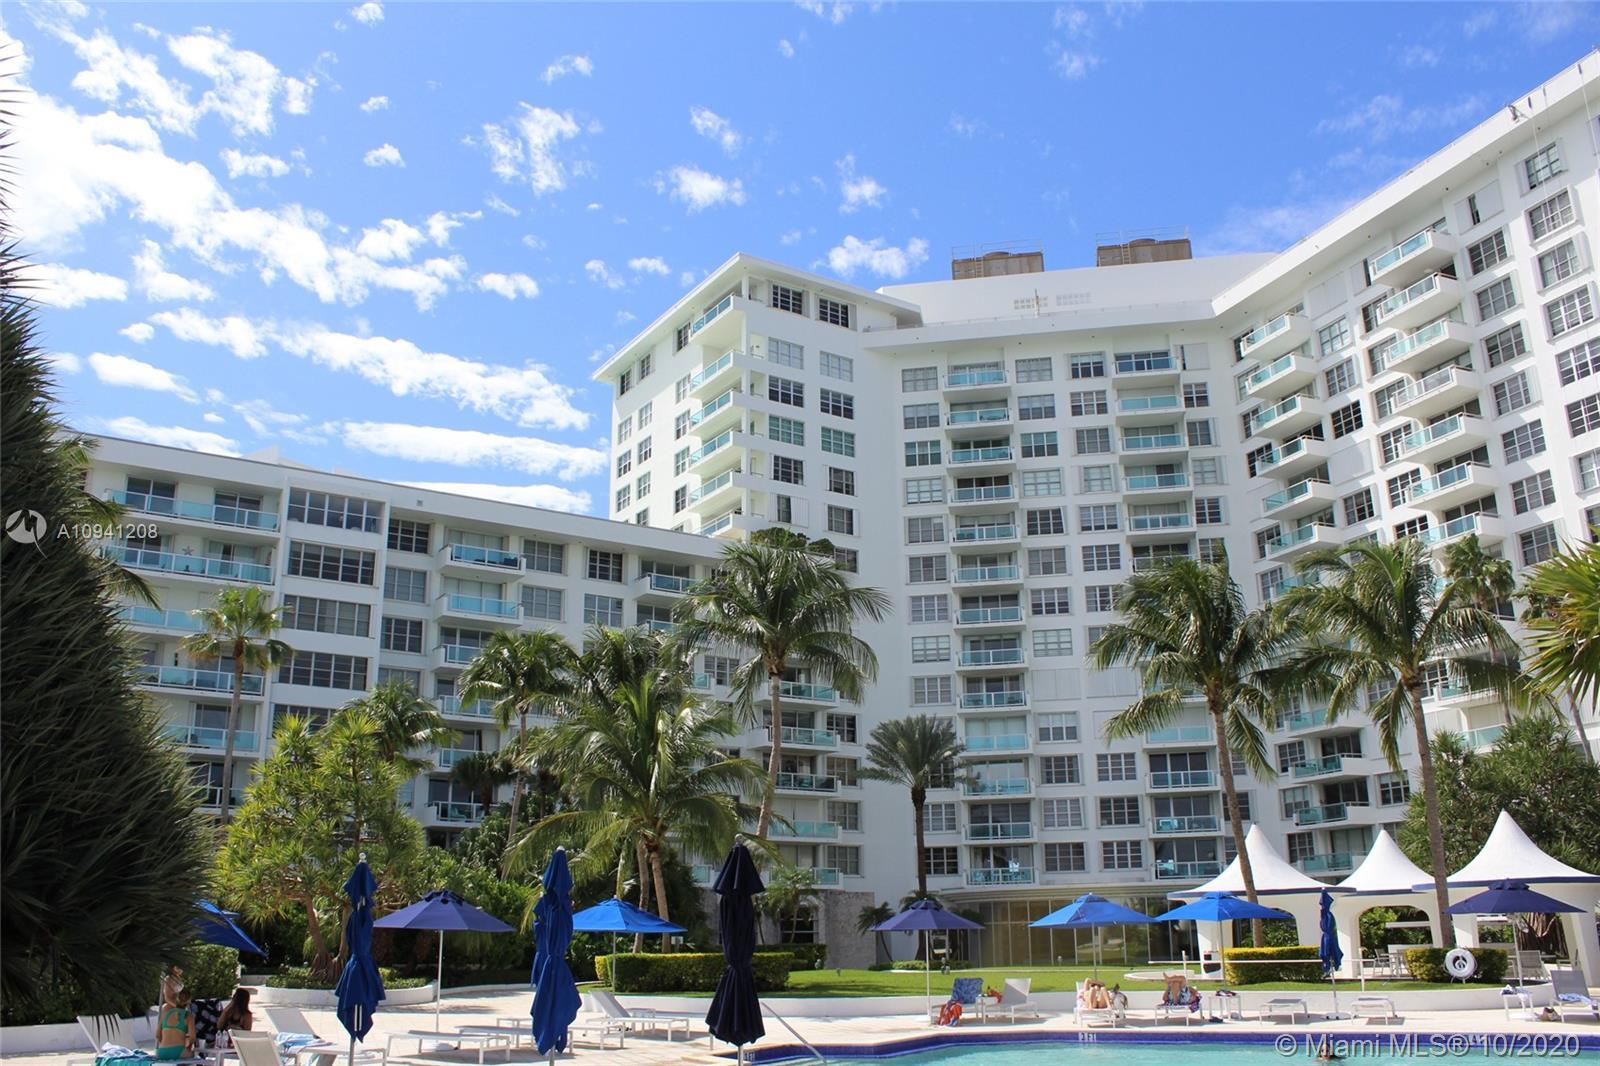 Seacoast is an iconic Miami Beach oceanfront building that has been recently remodeled and offers ex